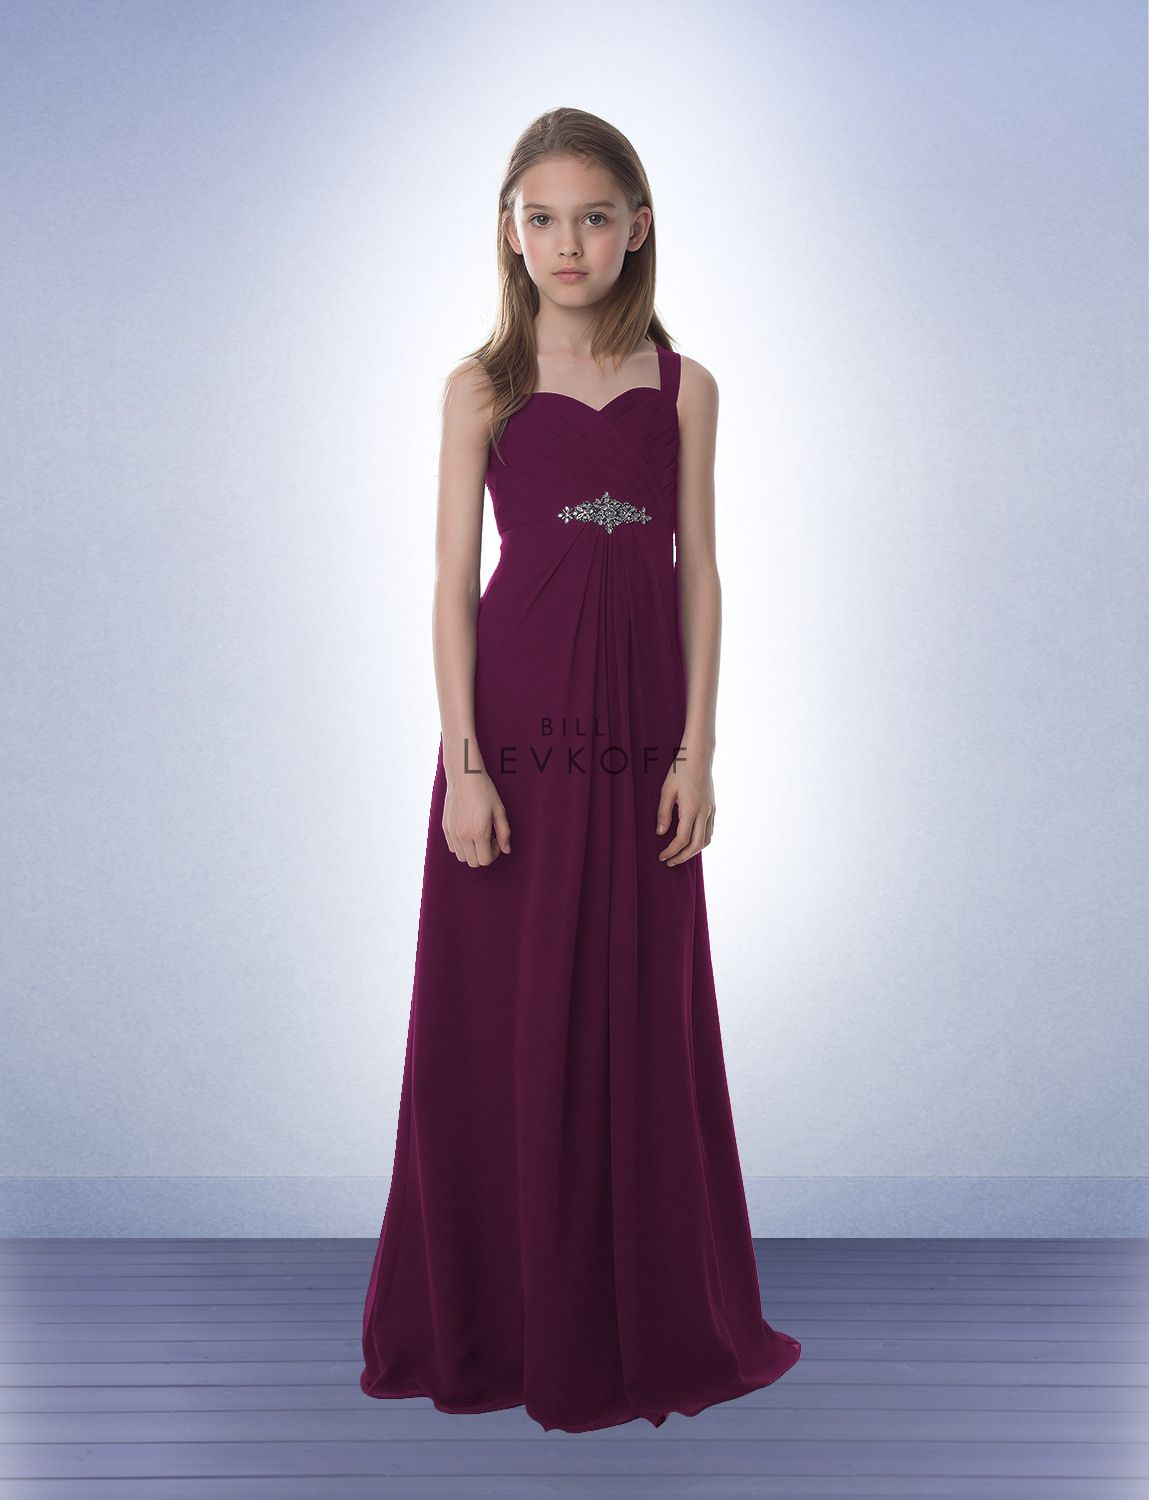 Junior bridesmaids style 77902 flower girl and junior wedding dresses bridesmaid dresses prom dresses and bridal dresses bill levkoff junior bridesmaid dresses style 77902 bill levkoff junior bridesmaid ombrellifo Image collections